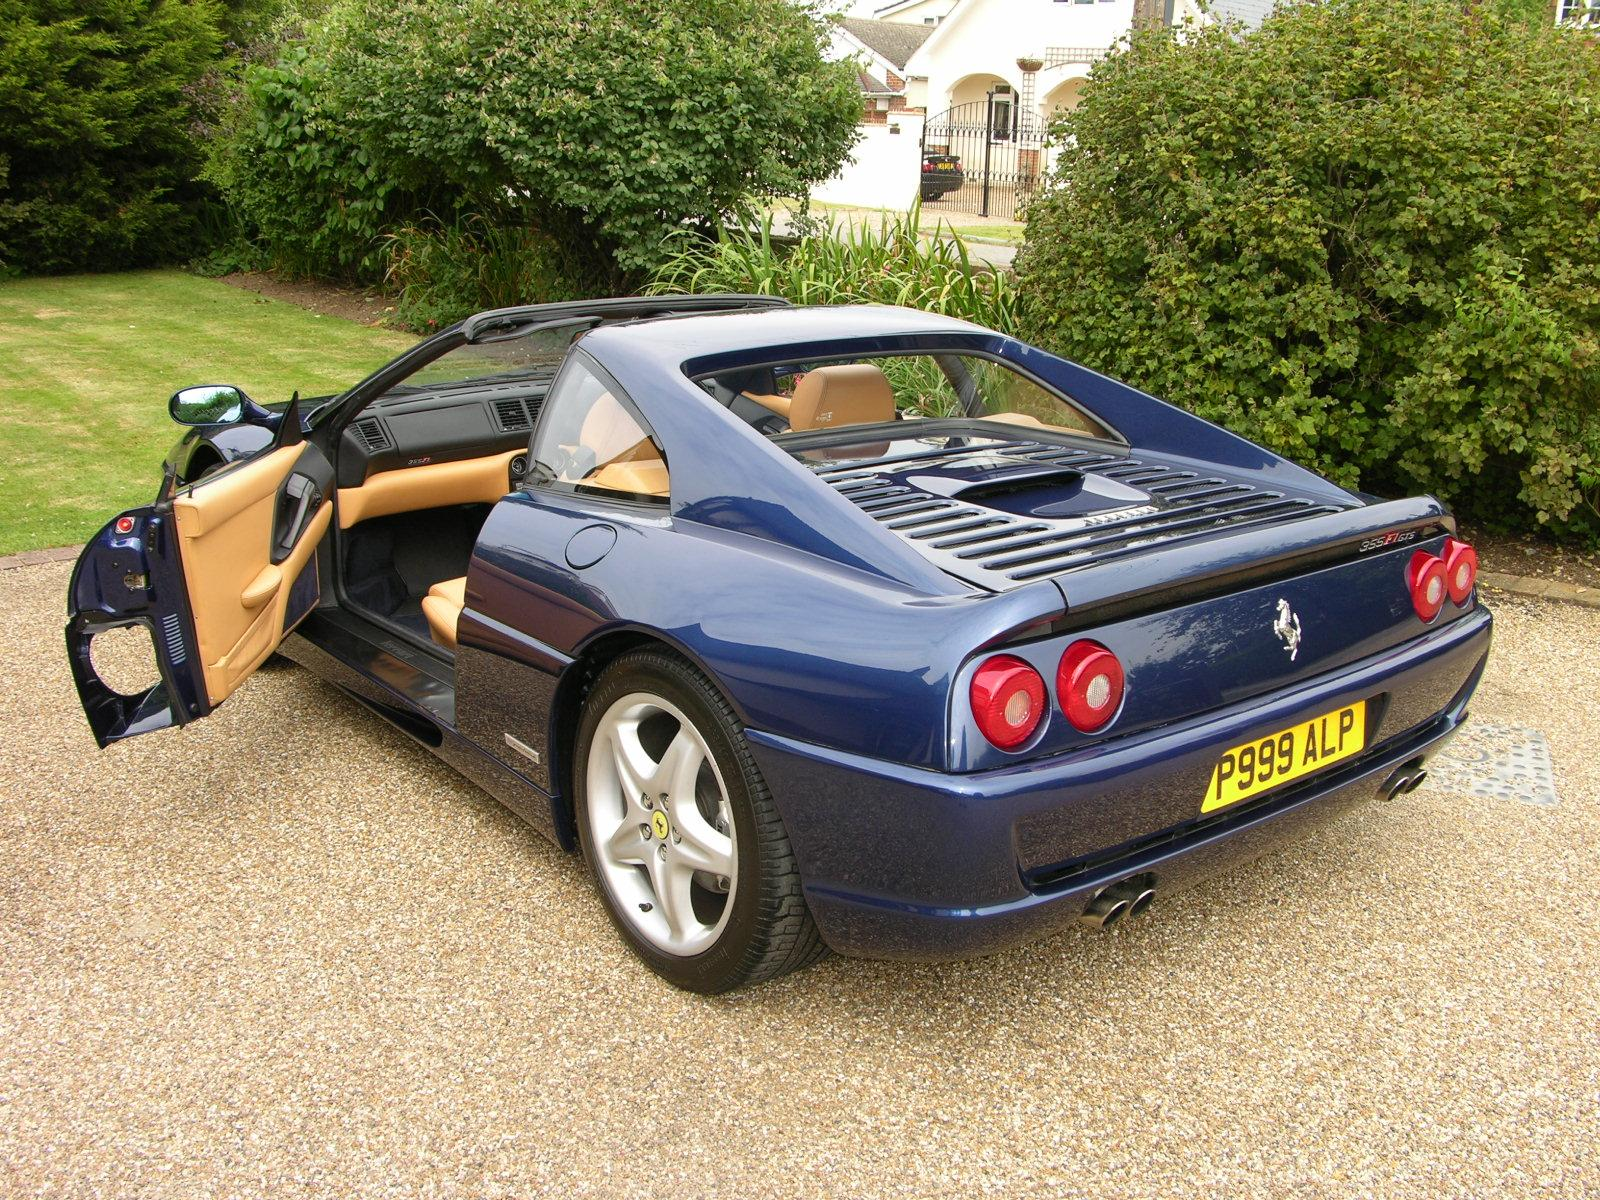 File:Ferrari 355 F1 GTS - Flickr - The Car Spy (16).